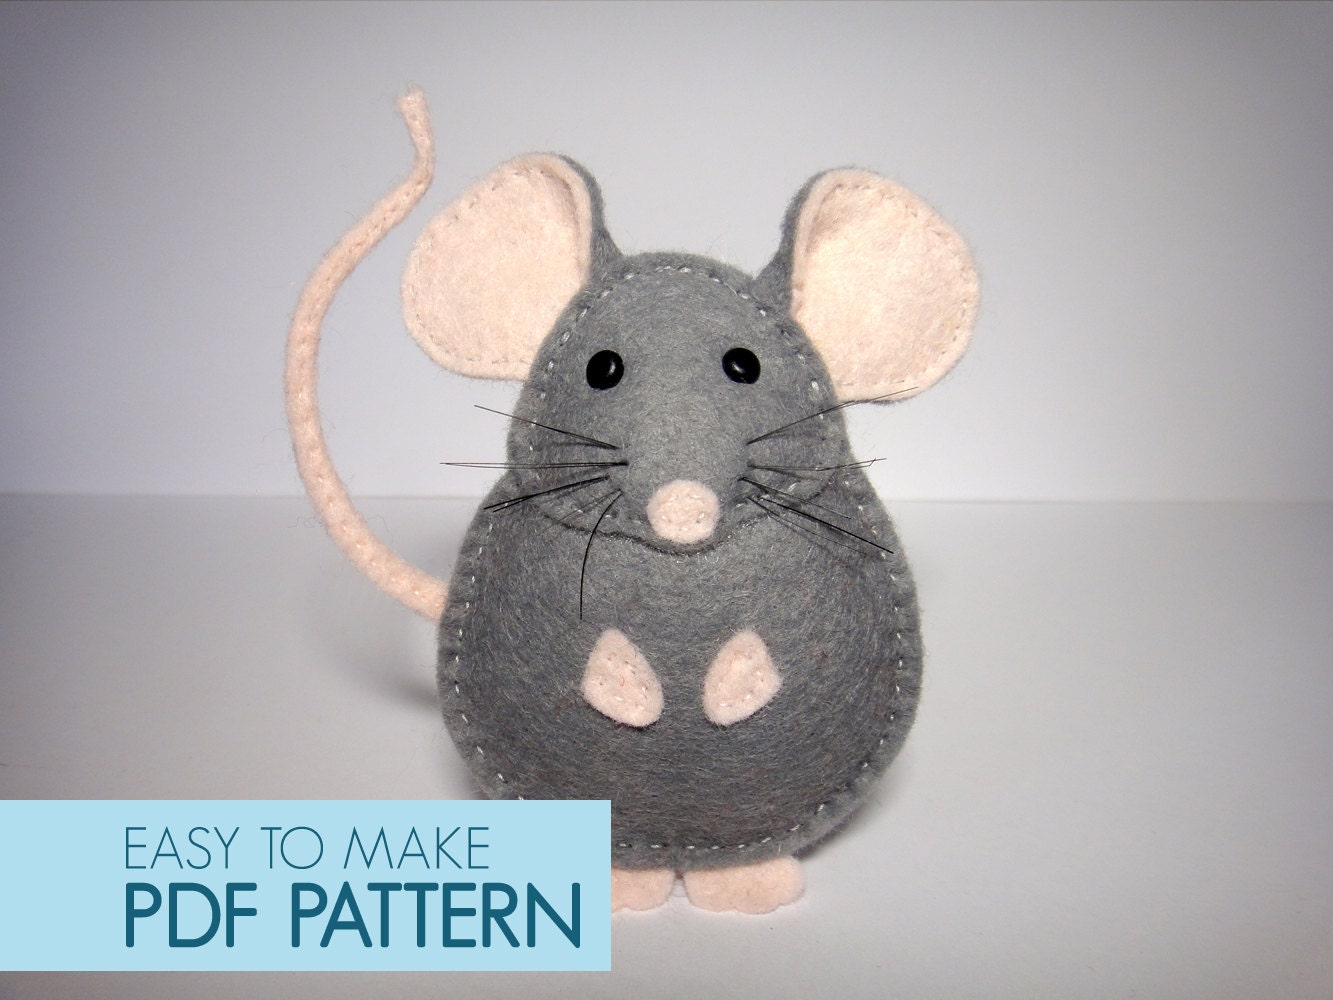 Easy to sew felt PDF pattern. DIY Pablo the Mouse finger